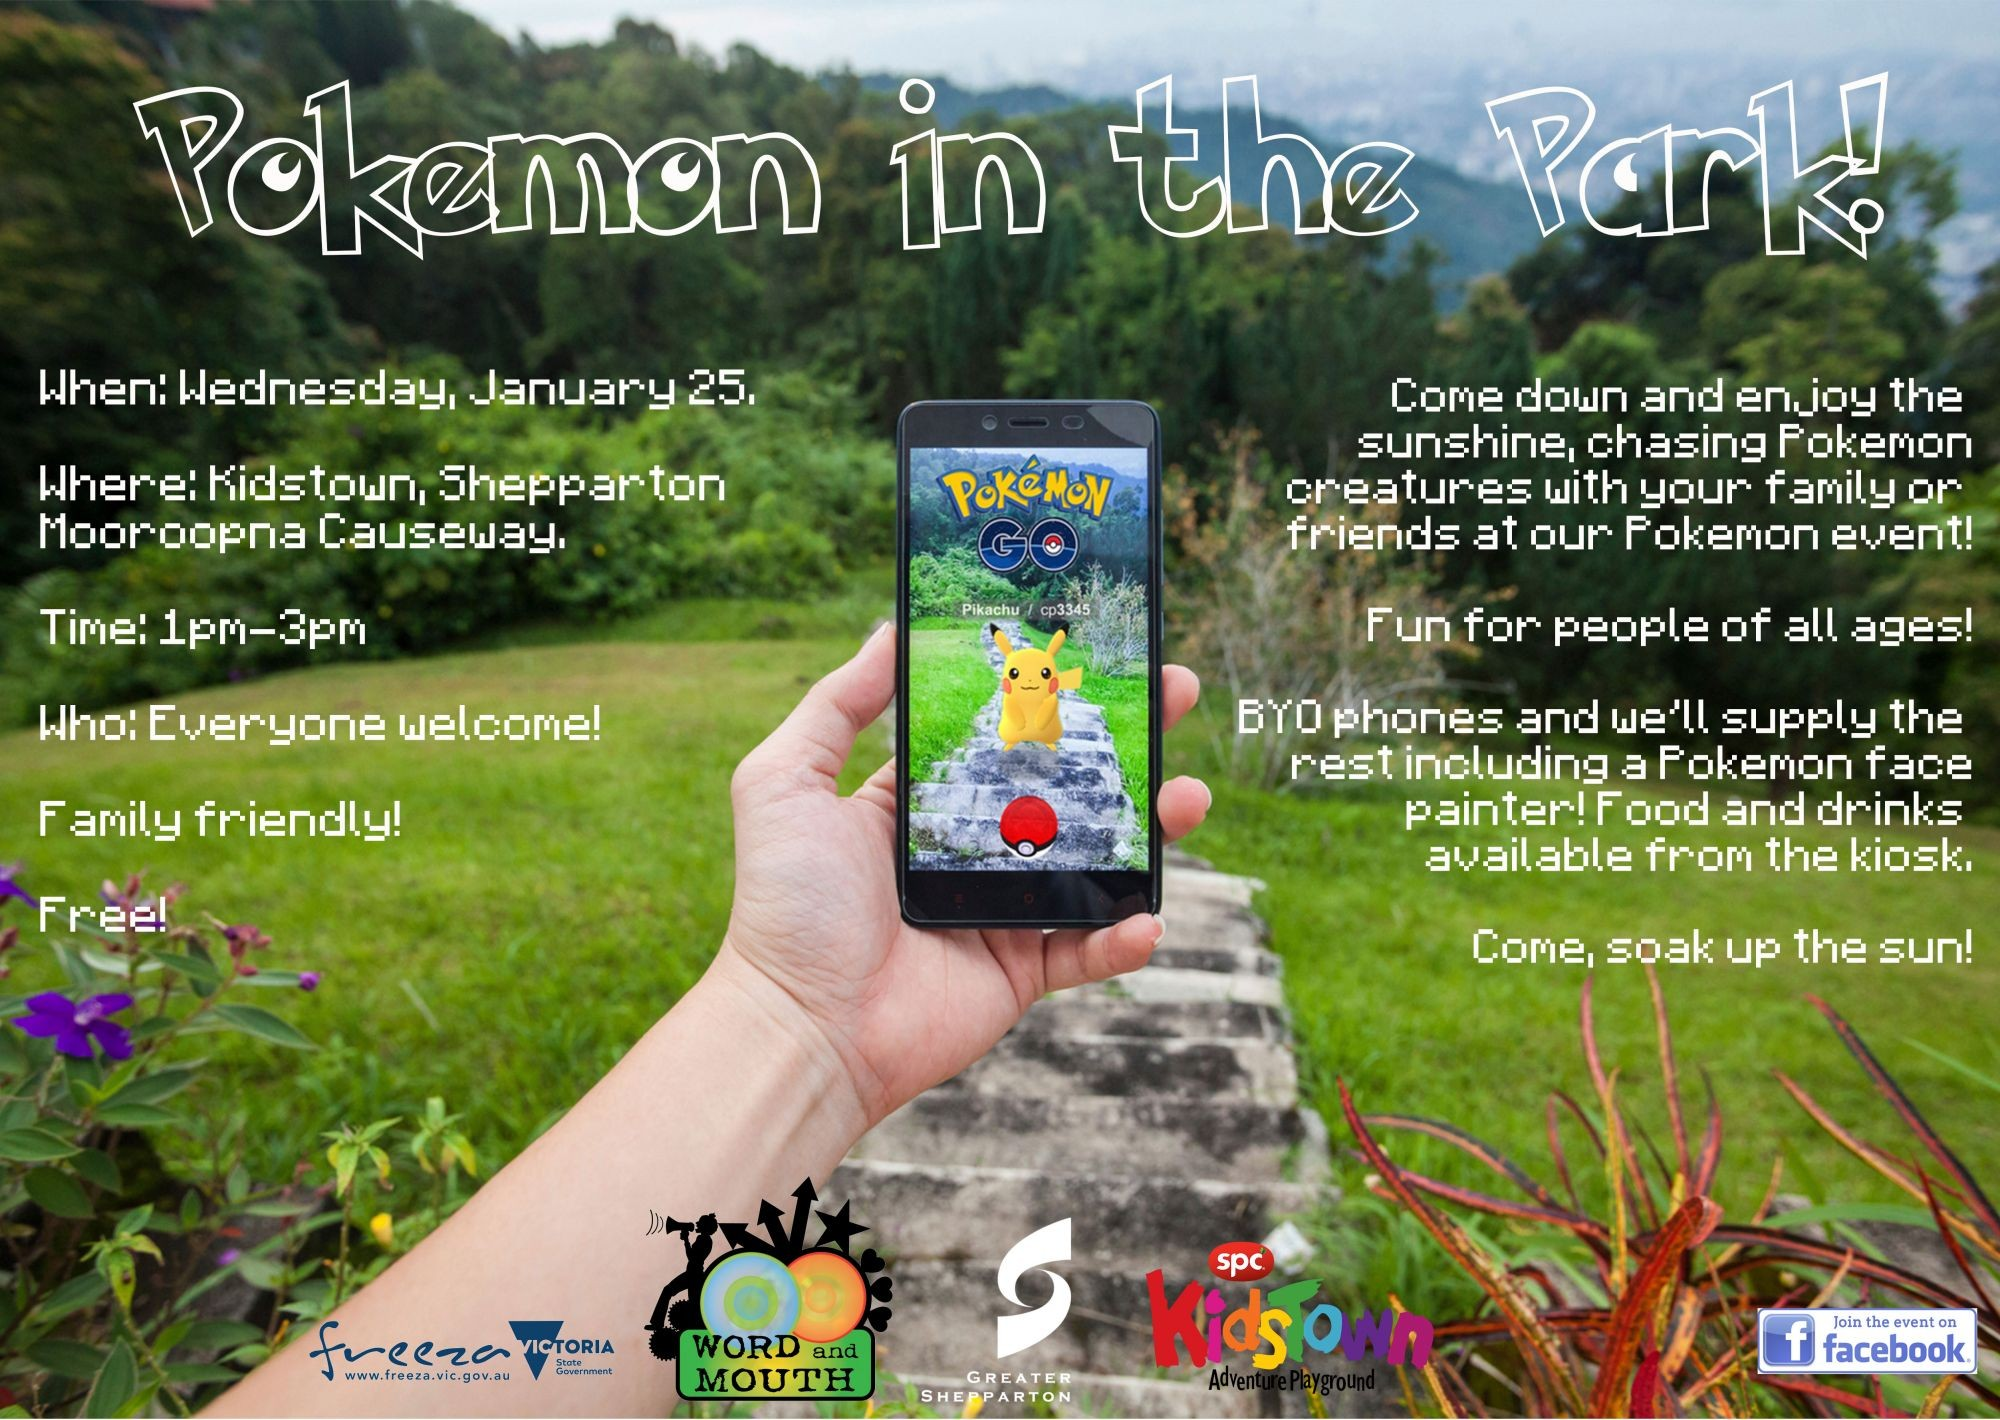 Word and Mouth Pokemon Go event rescheduled - Greater